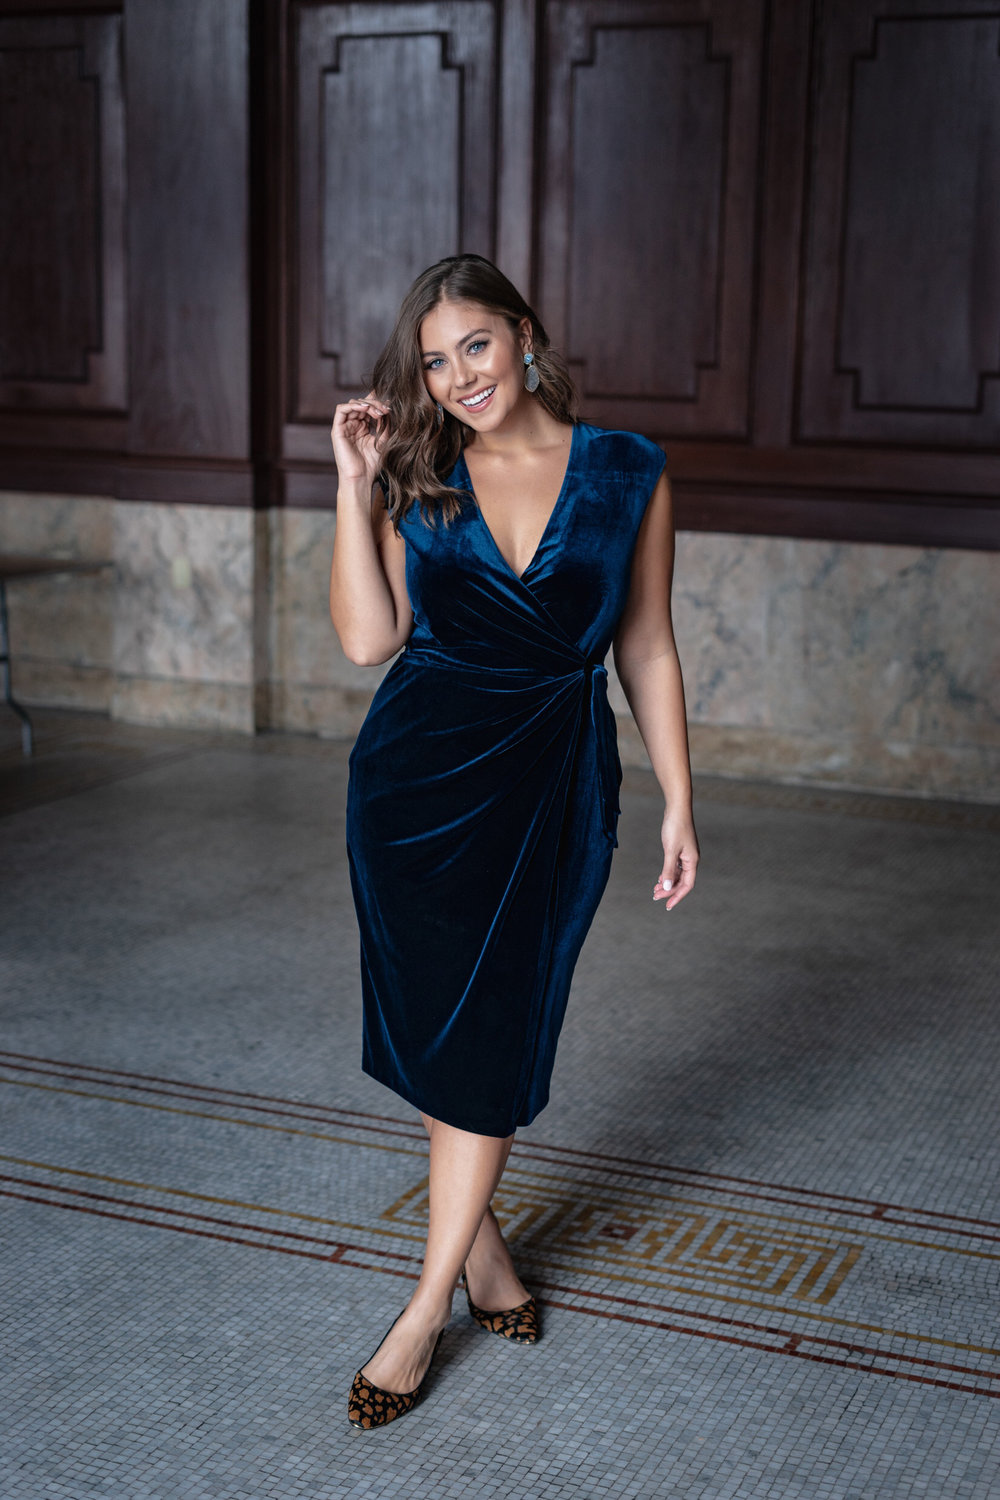 For Something Velvet: The Tara Dress